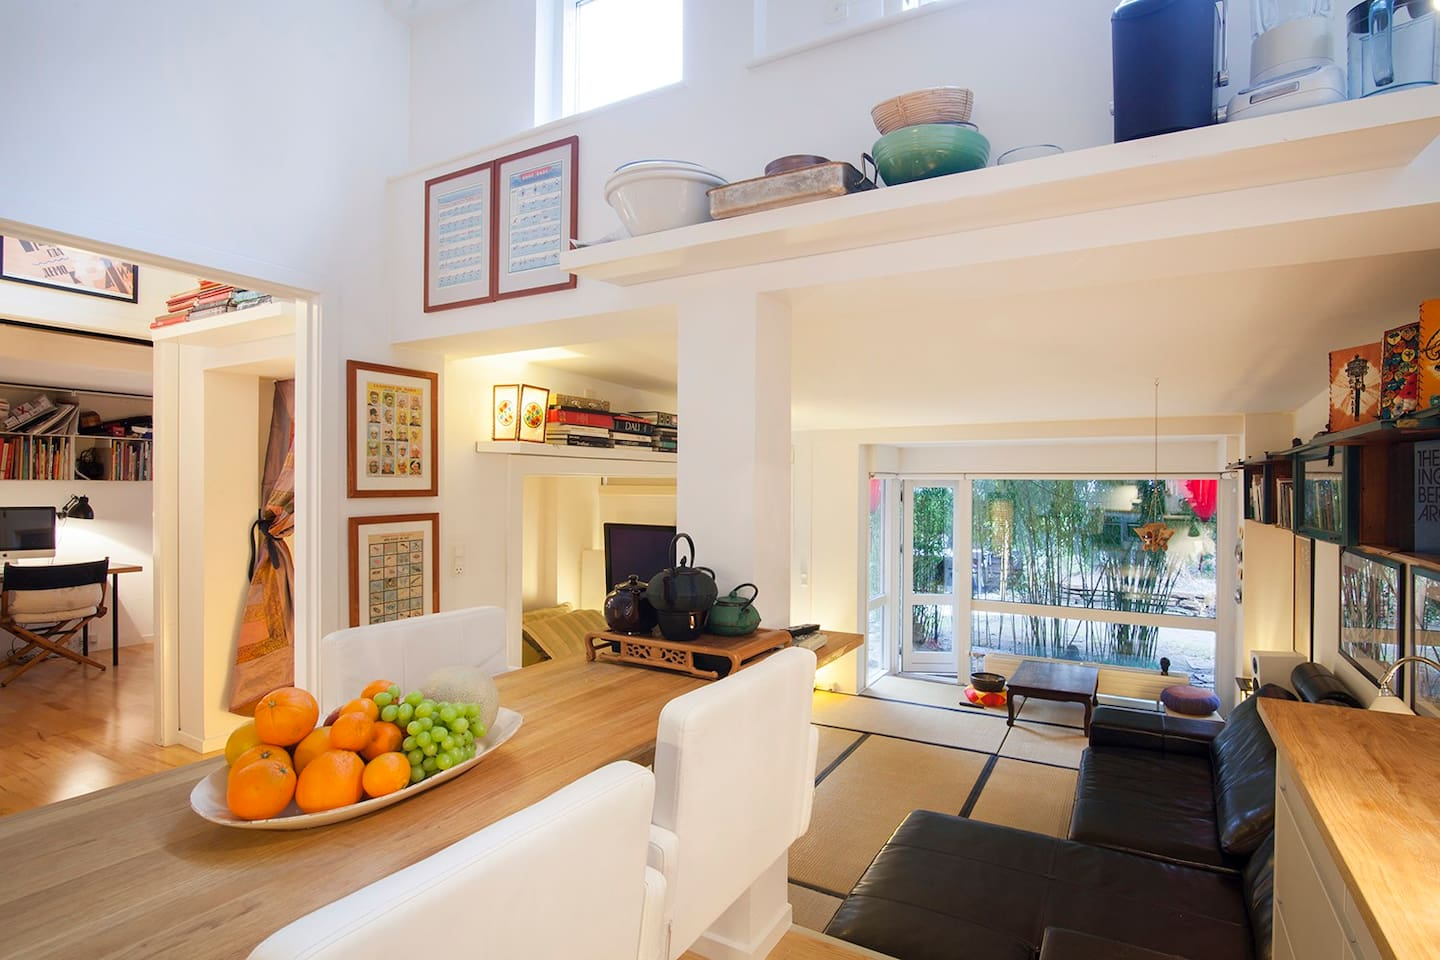 The kitchen offers great view to all rooms